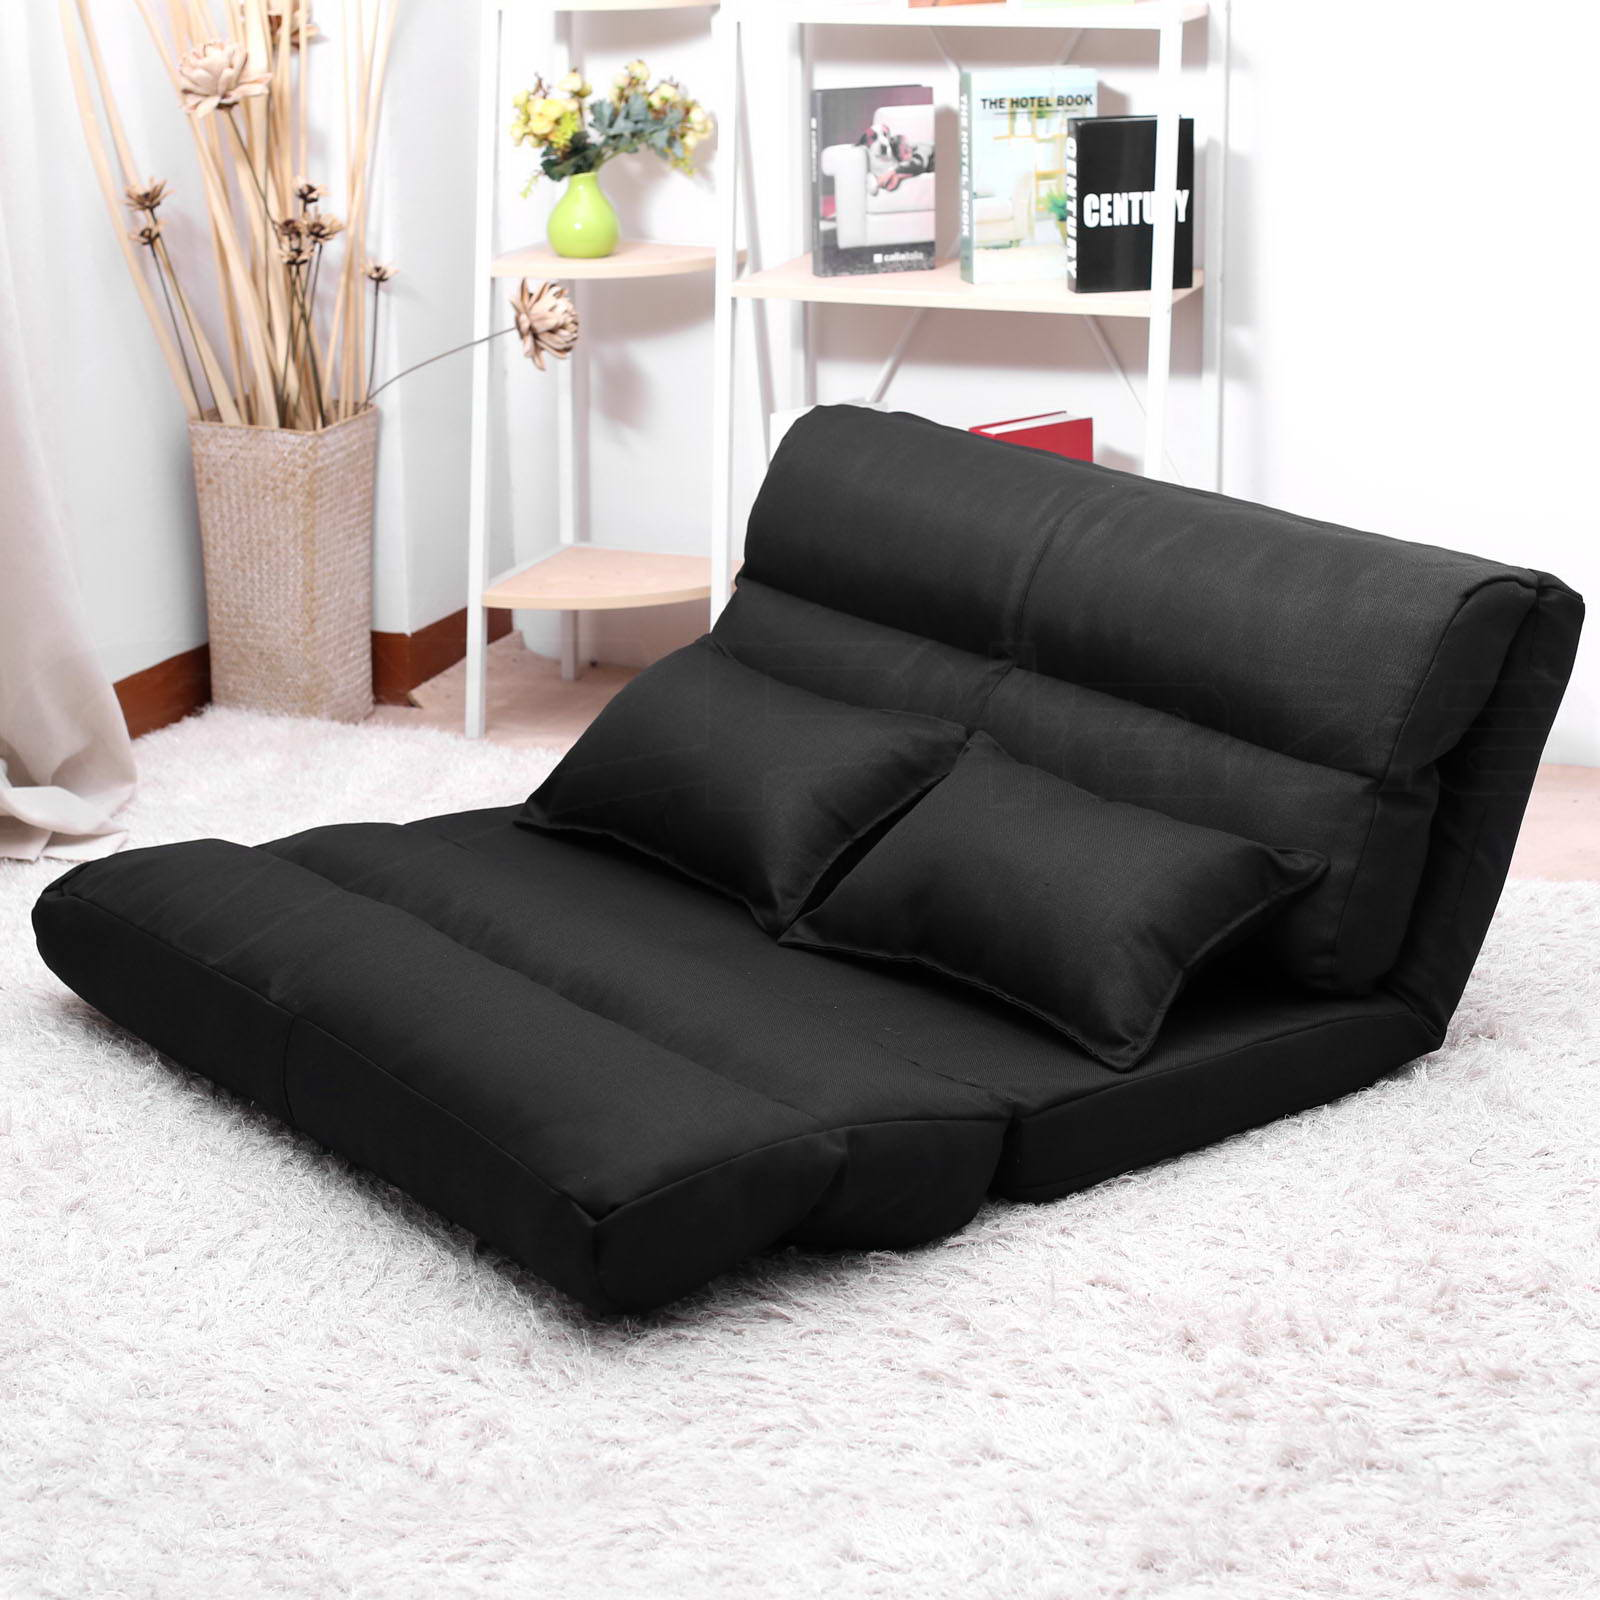 Lounge sofa bed double size floor recliner folding chaise for Chaise longue double sofa bed